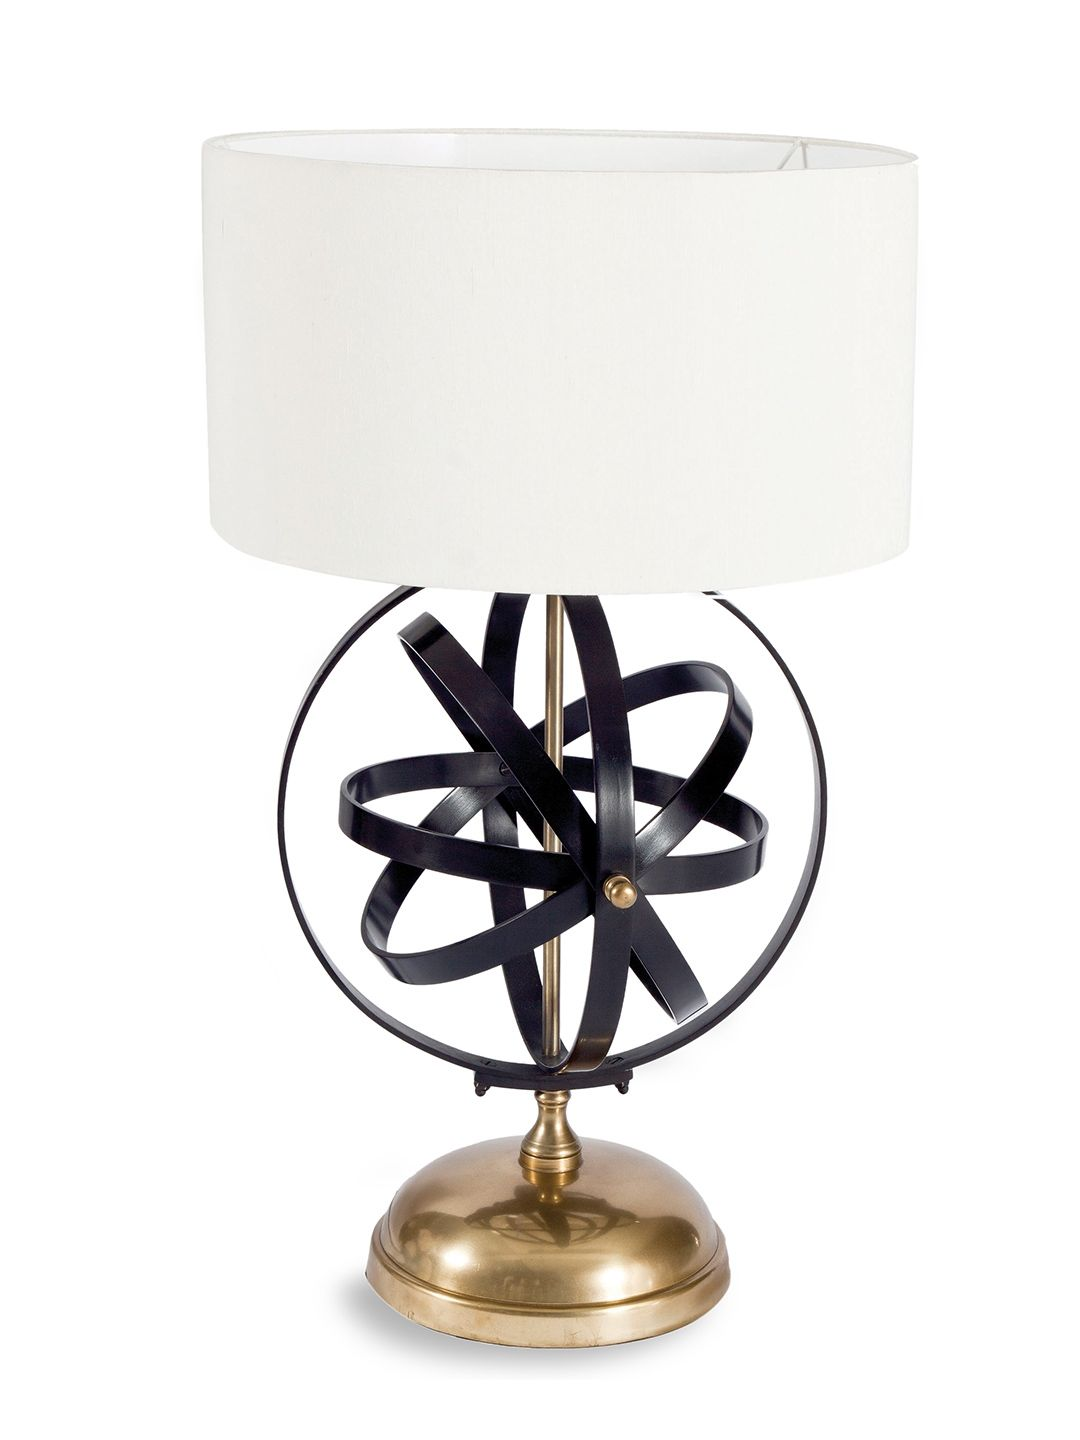 Orbit table lamp by four hands at gilt lighting pinterest electrical outlets orbit table lamp by four hands at gilt geotapseo Choice Image